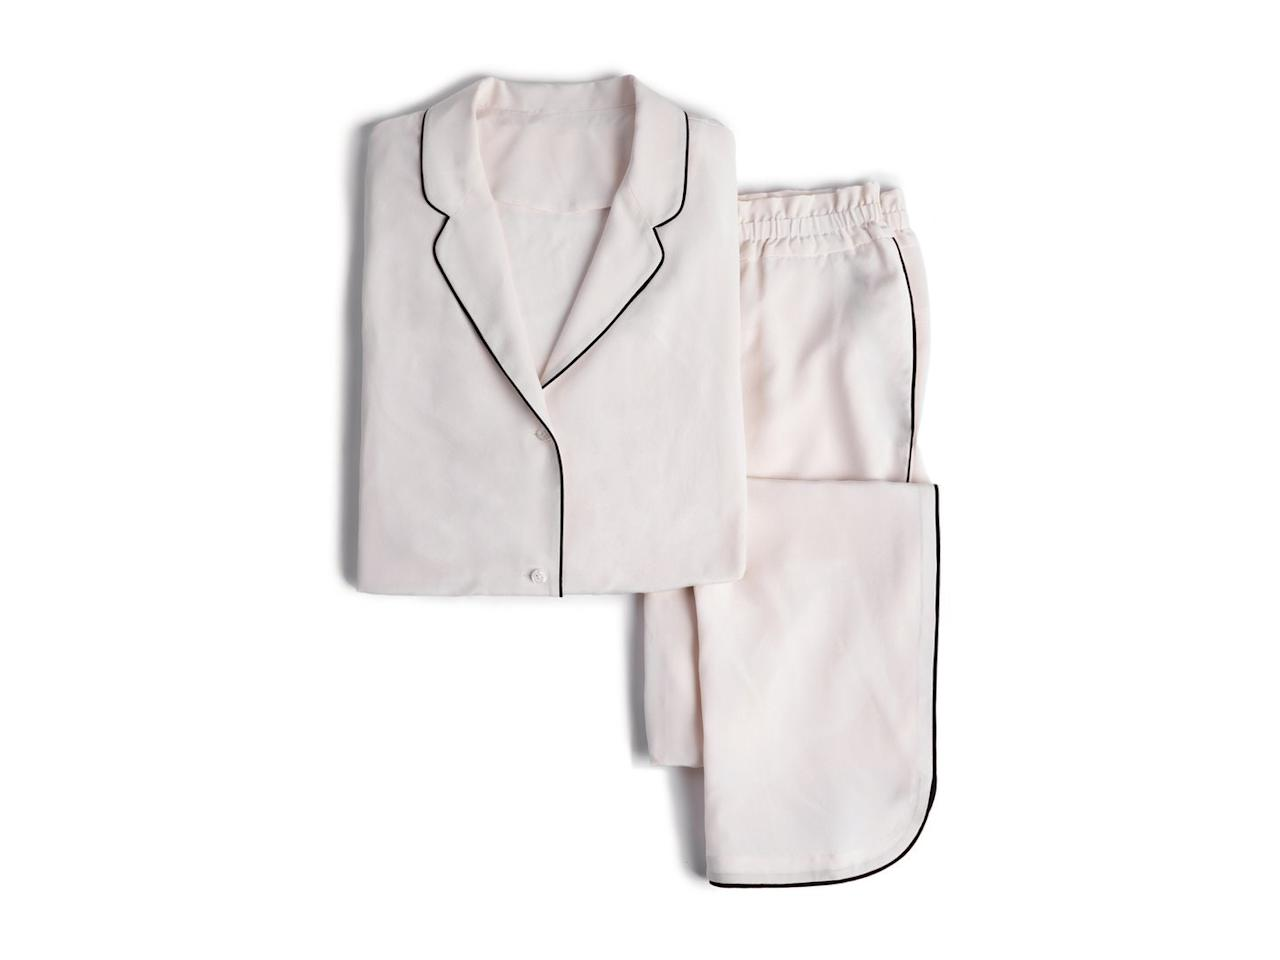 """<p>With the scrunched elastic waistband and black piping down the leg, this crepe de Chine silk set from Parachute could easily be mistaken for luxe athleisure pieces. (We won't tell if you won't.)</p> <p><strong>$299</strong> (<a href=""""https://www.parachutehome.com/products/silk-pajama-sets?opt-color=blush"""" rel=""""nofollow"""">Shop Now</a>)</p>"""